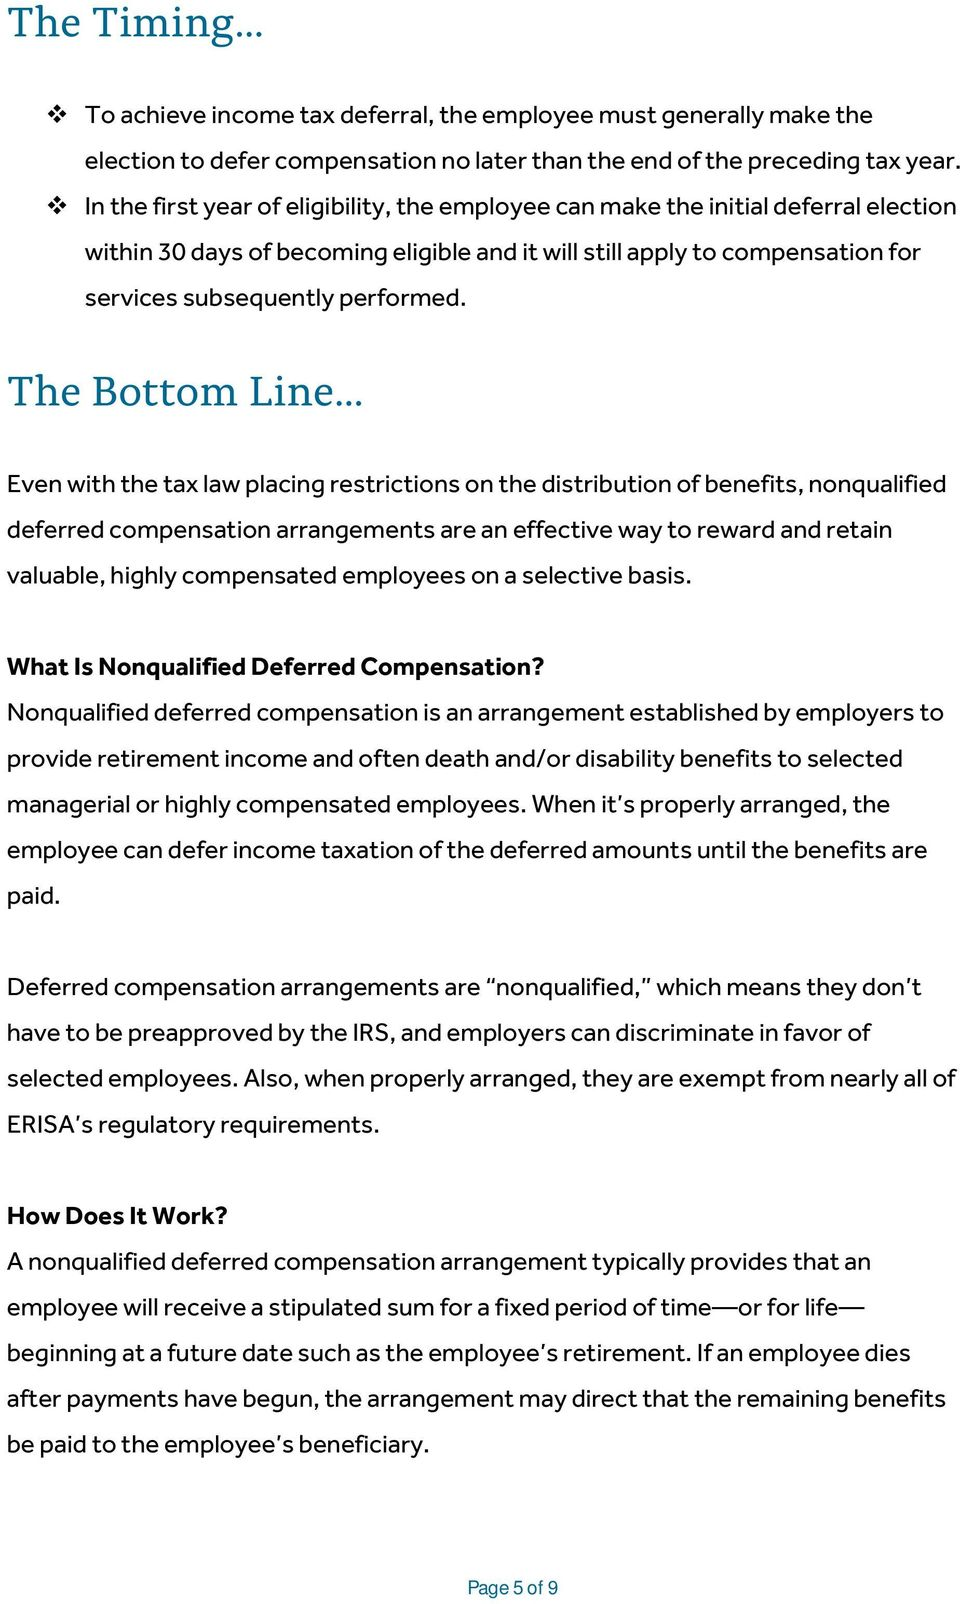 The Bottom Line Even with the tax law placing restrictions on the distribution of benefits, nonqualified deferred compensation arrangements are an effective way to reward and retain valuable, highly